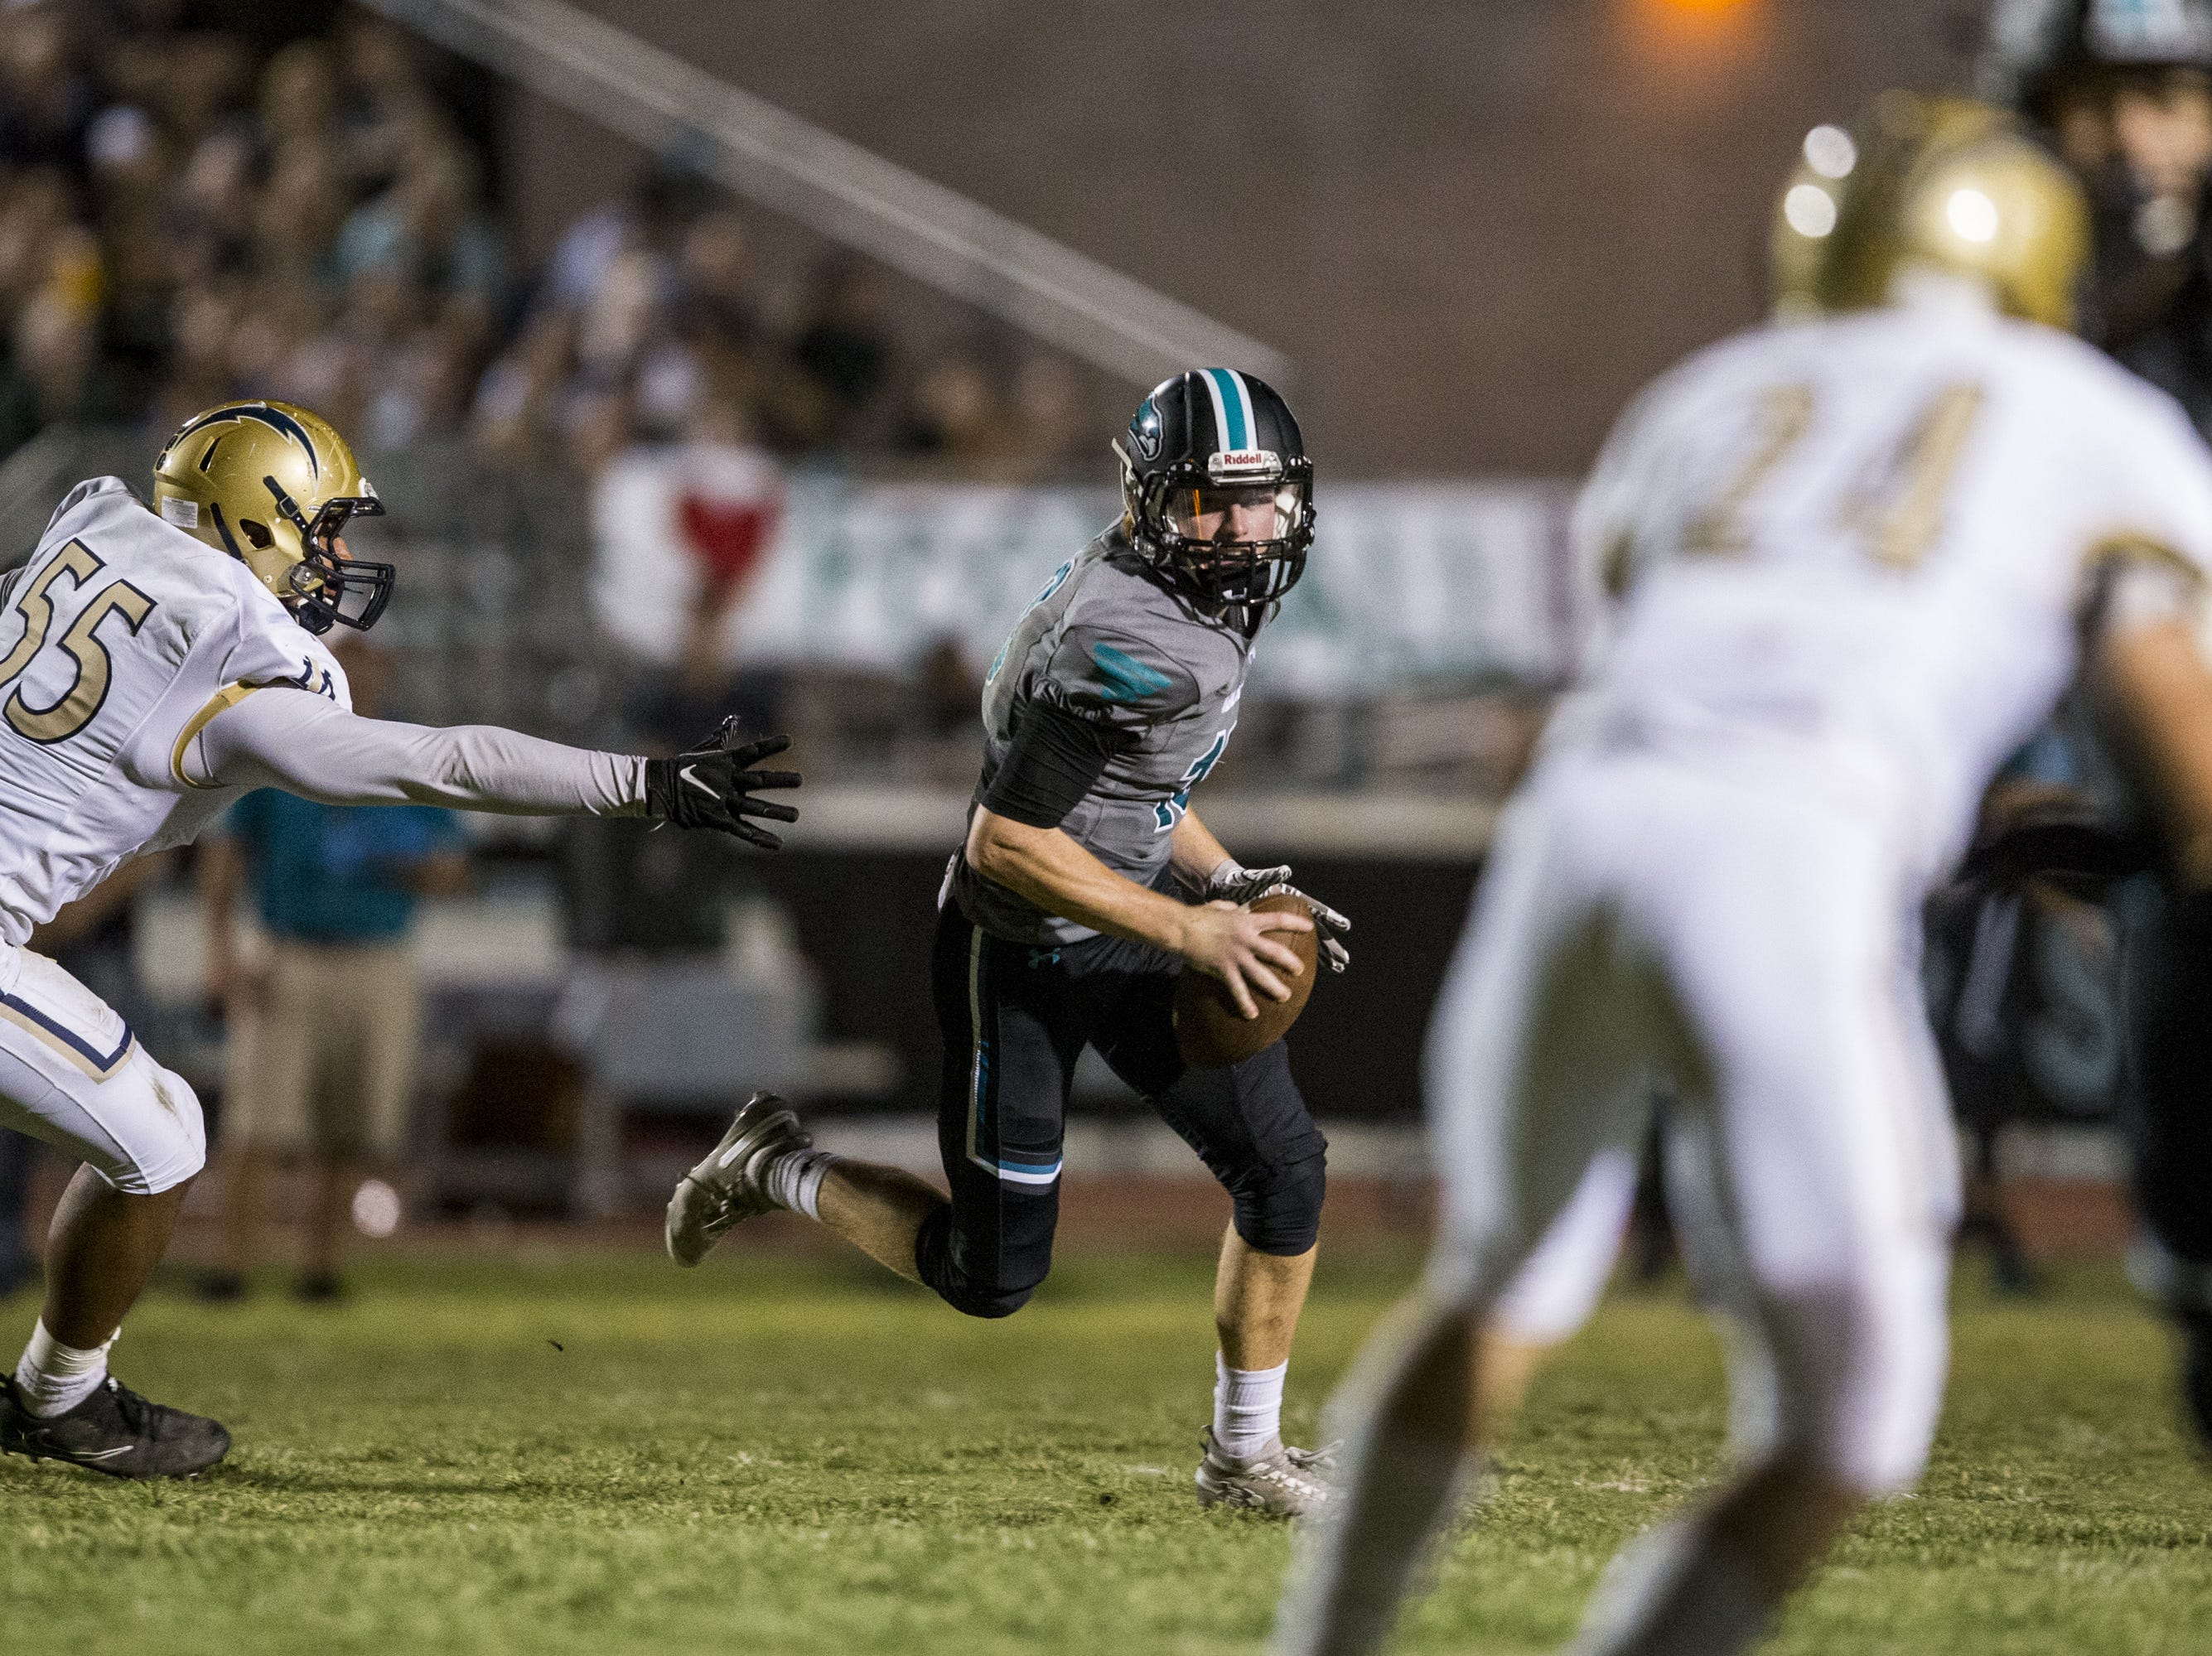 Highland's Kaleb Herbert scrambles against Desert Vista in the 2nd quarter on Friday, Sept. 21, 2018, at Highland High School in Gilbert, Ariz.   #azhsfb